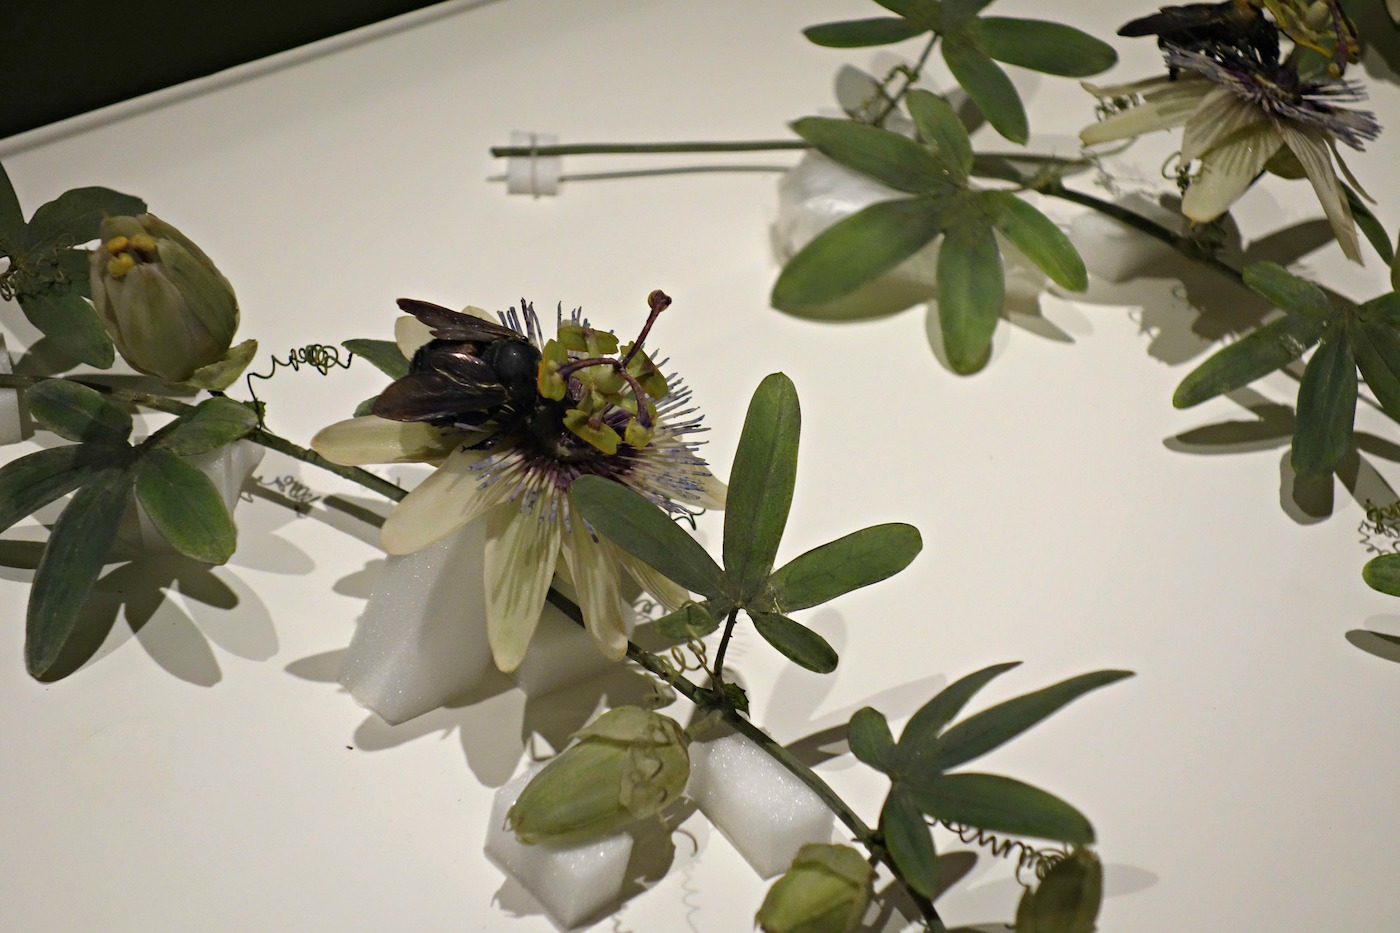 Installation view of the Glass Flowers Gallery at the Harvard Museum of Natural History